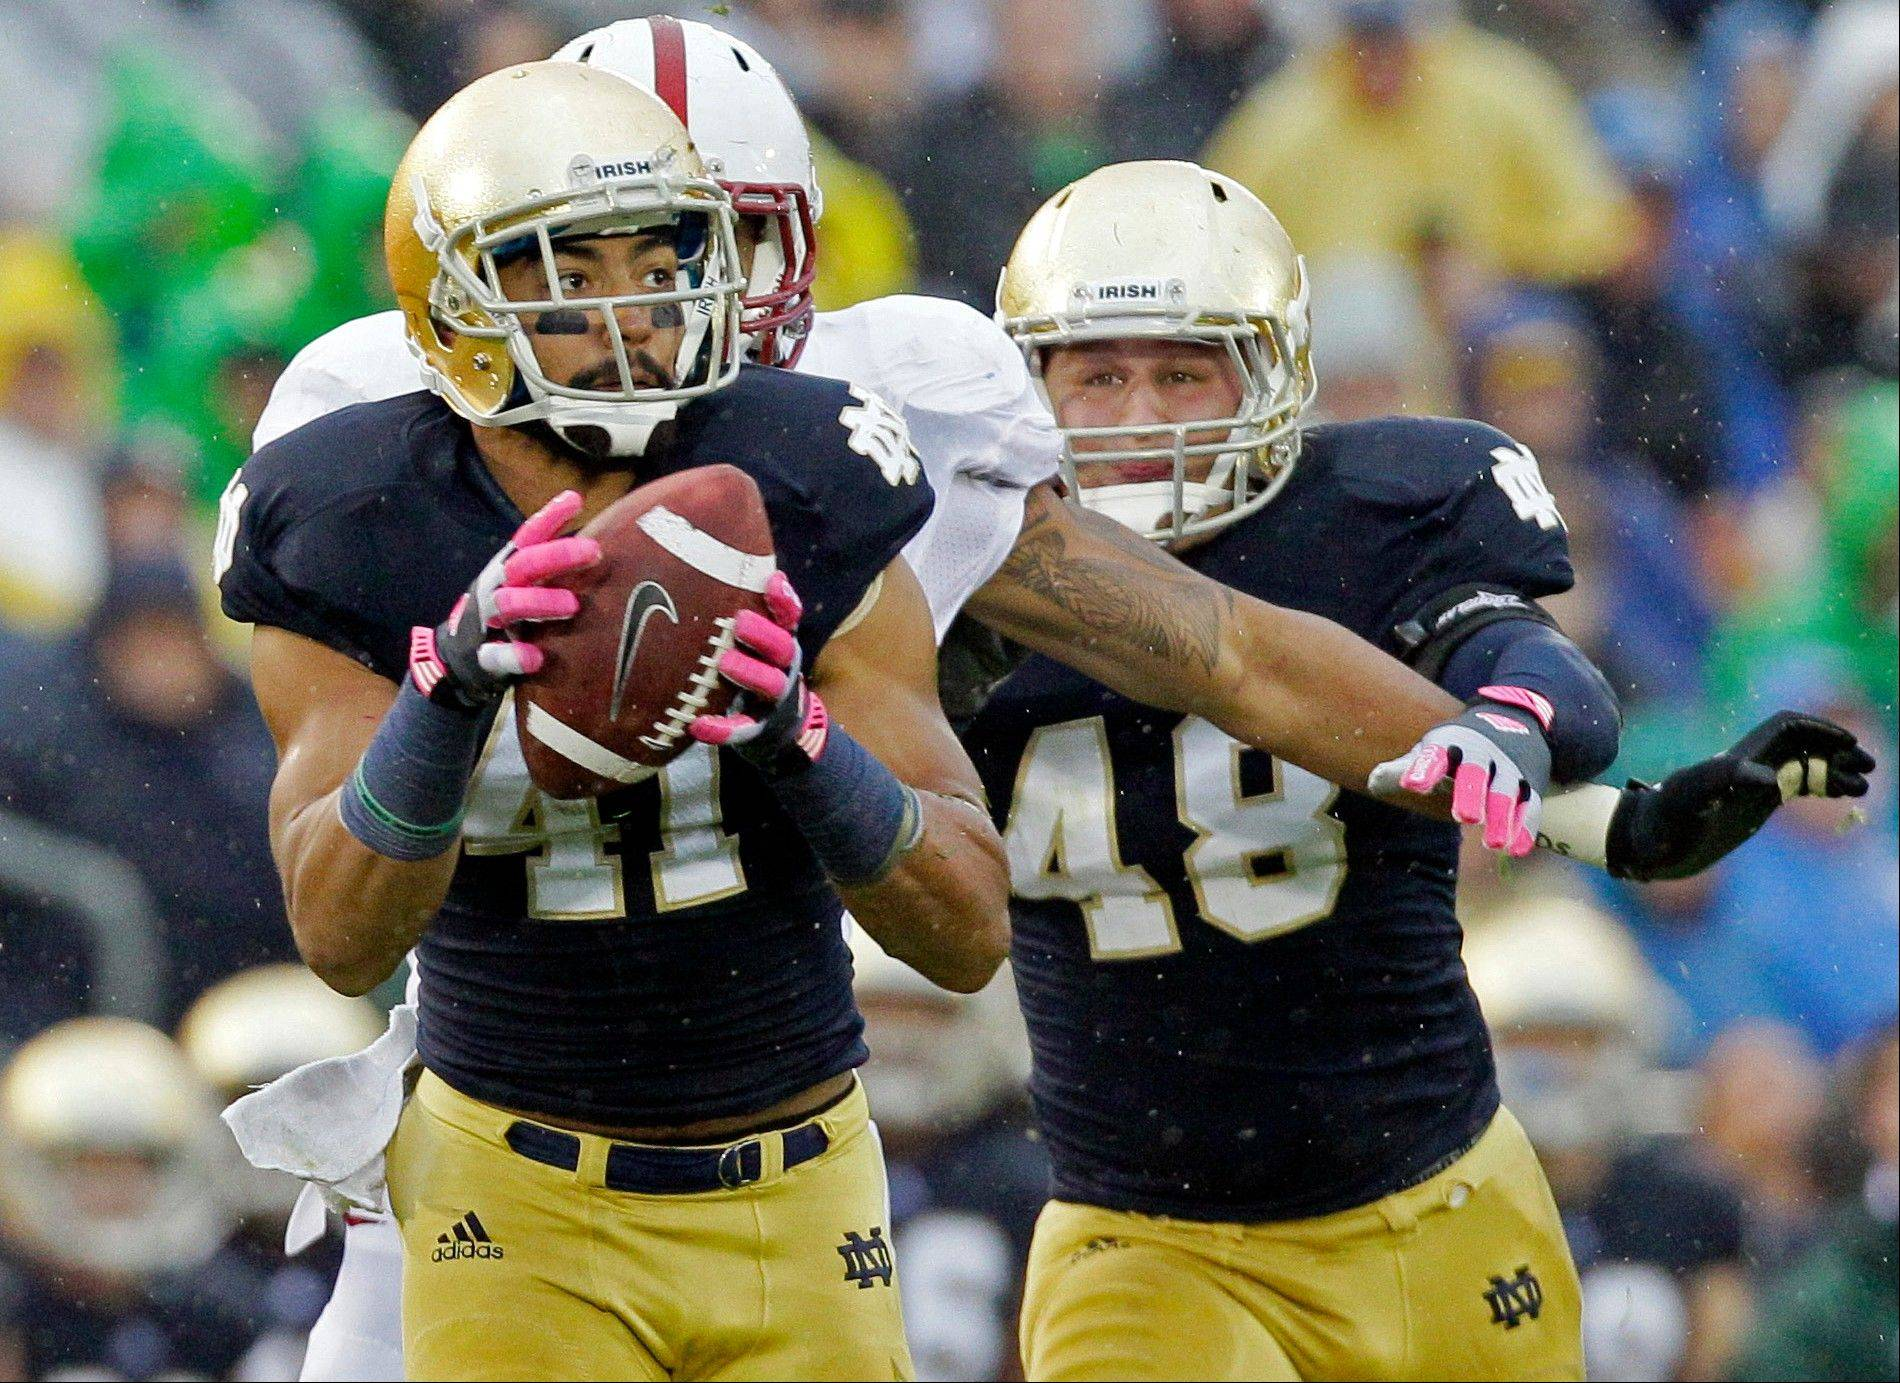 Notre Dame's Farley takes long route to BCS title game